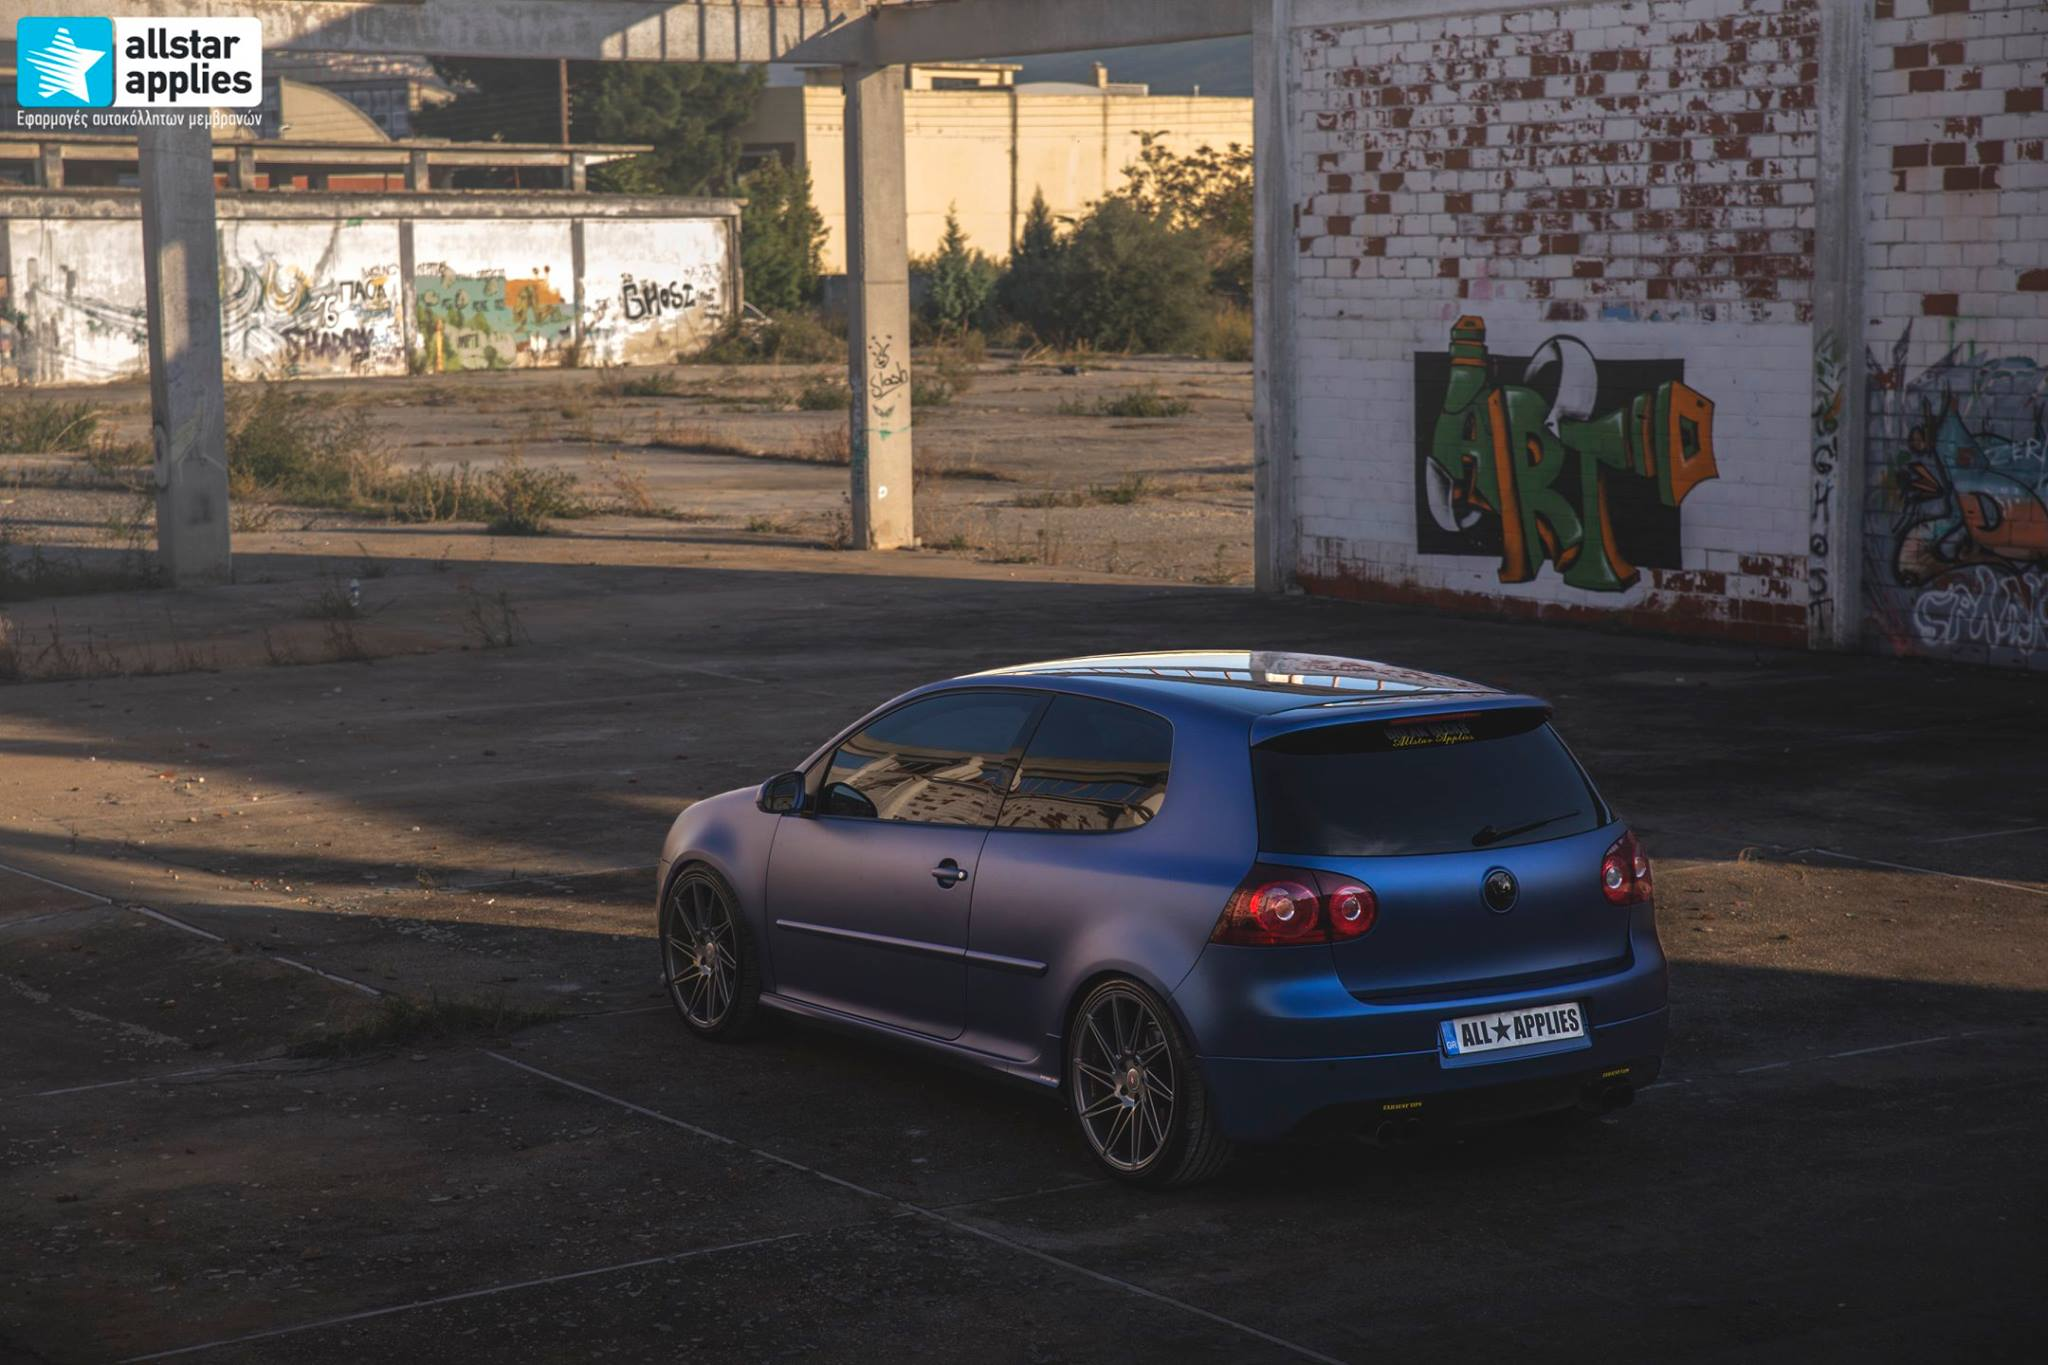 VW Golf 5 - Matt Trenton Blue (4)